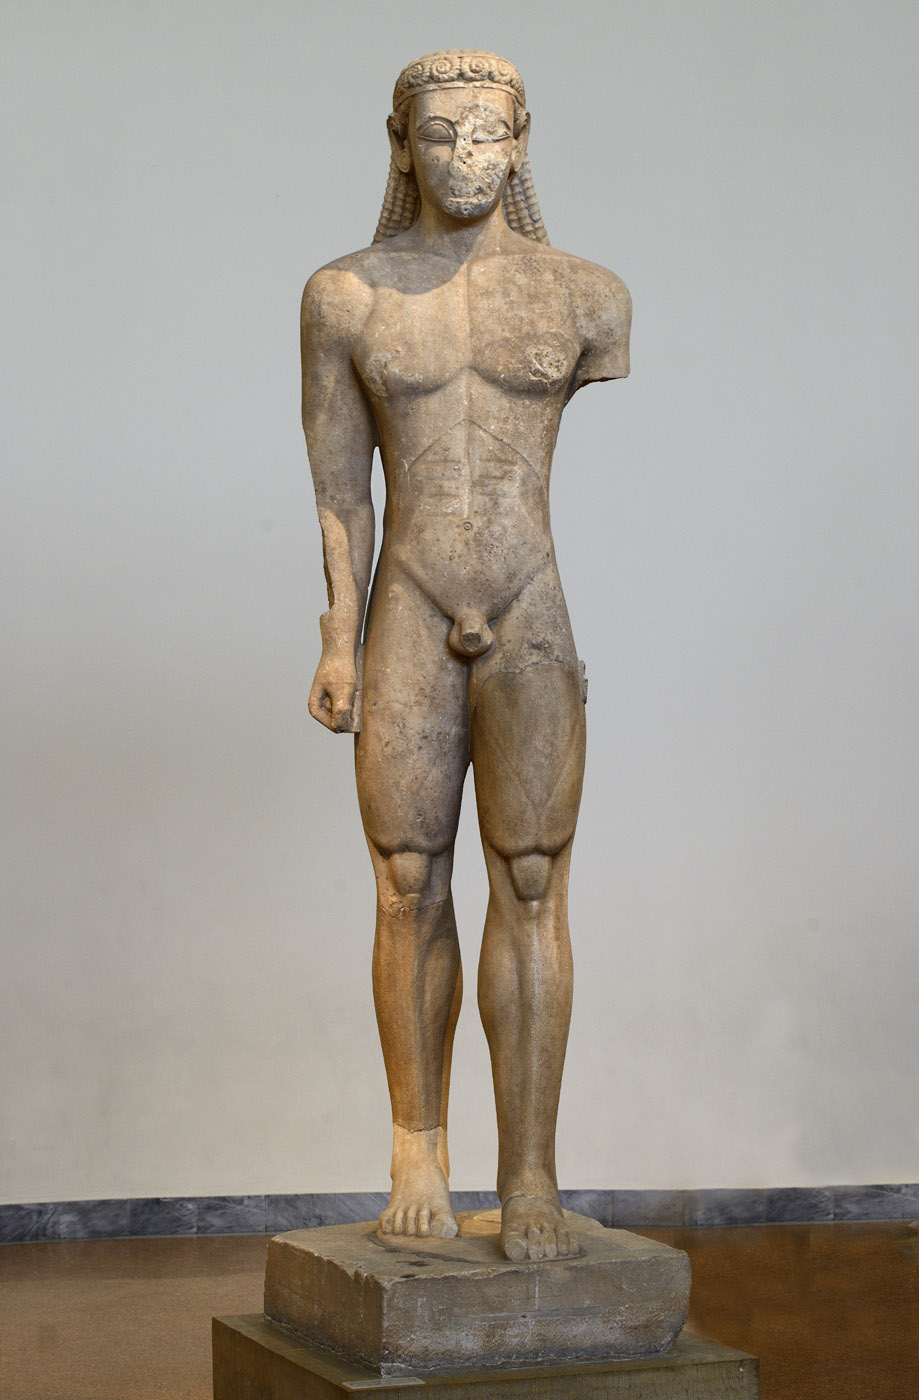 Kouros (a votive offering to Poseidon). Naxian marble. Ca. 600 BCE. Inv. No. 2720. Athens, National Archaeological Museum